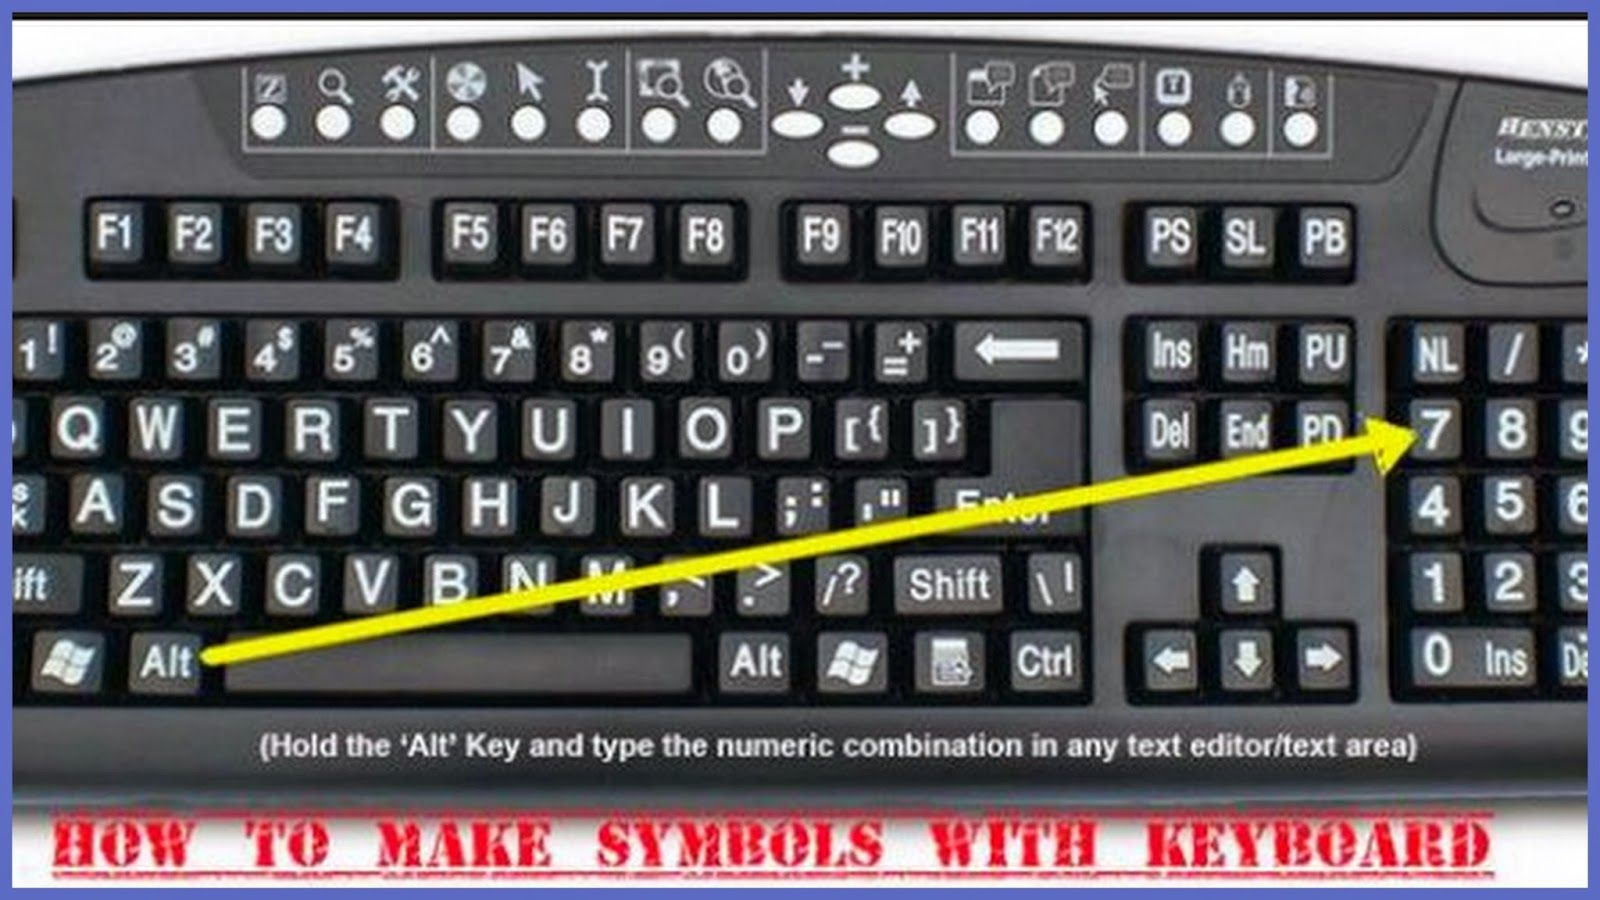 Re train your brain to happiness how to make symbols with your keyboard symbols biocorpaavc